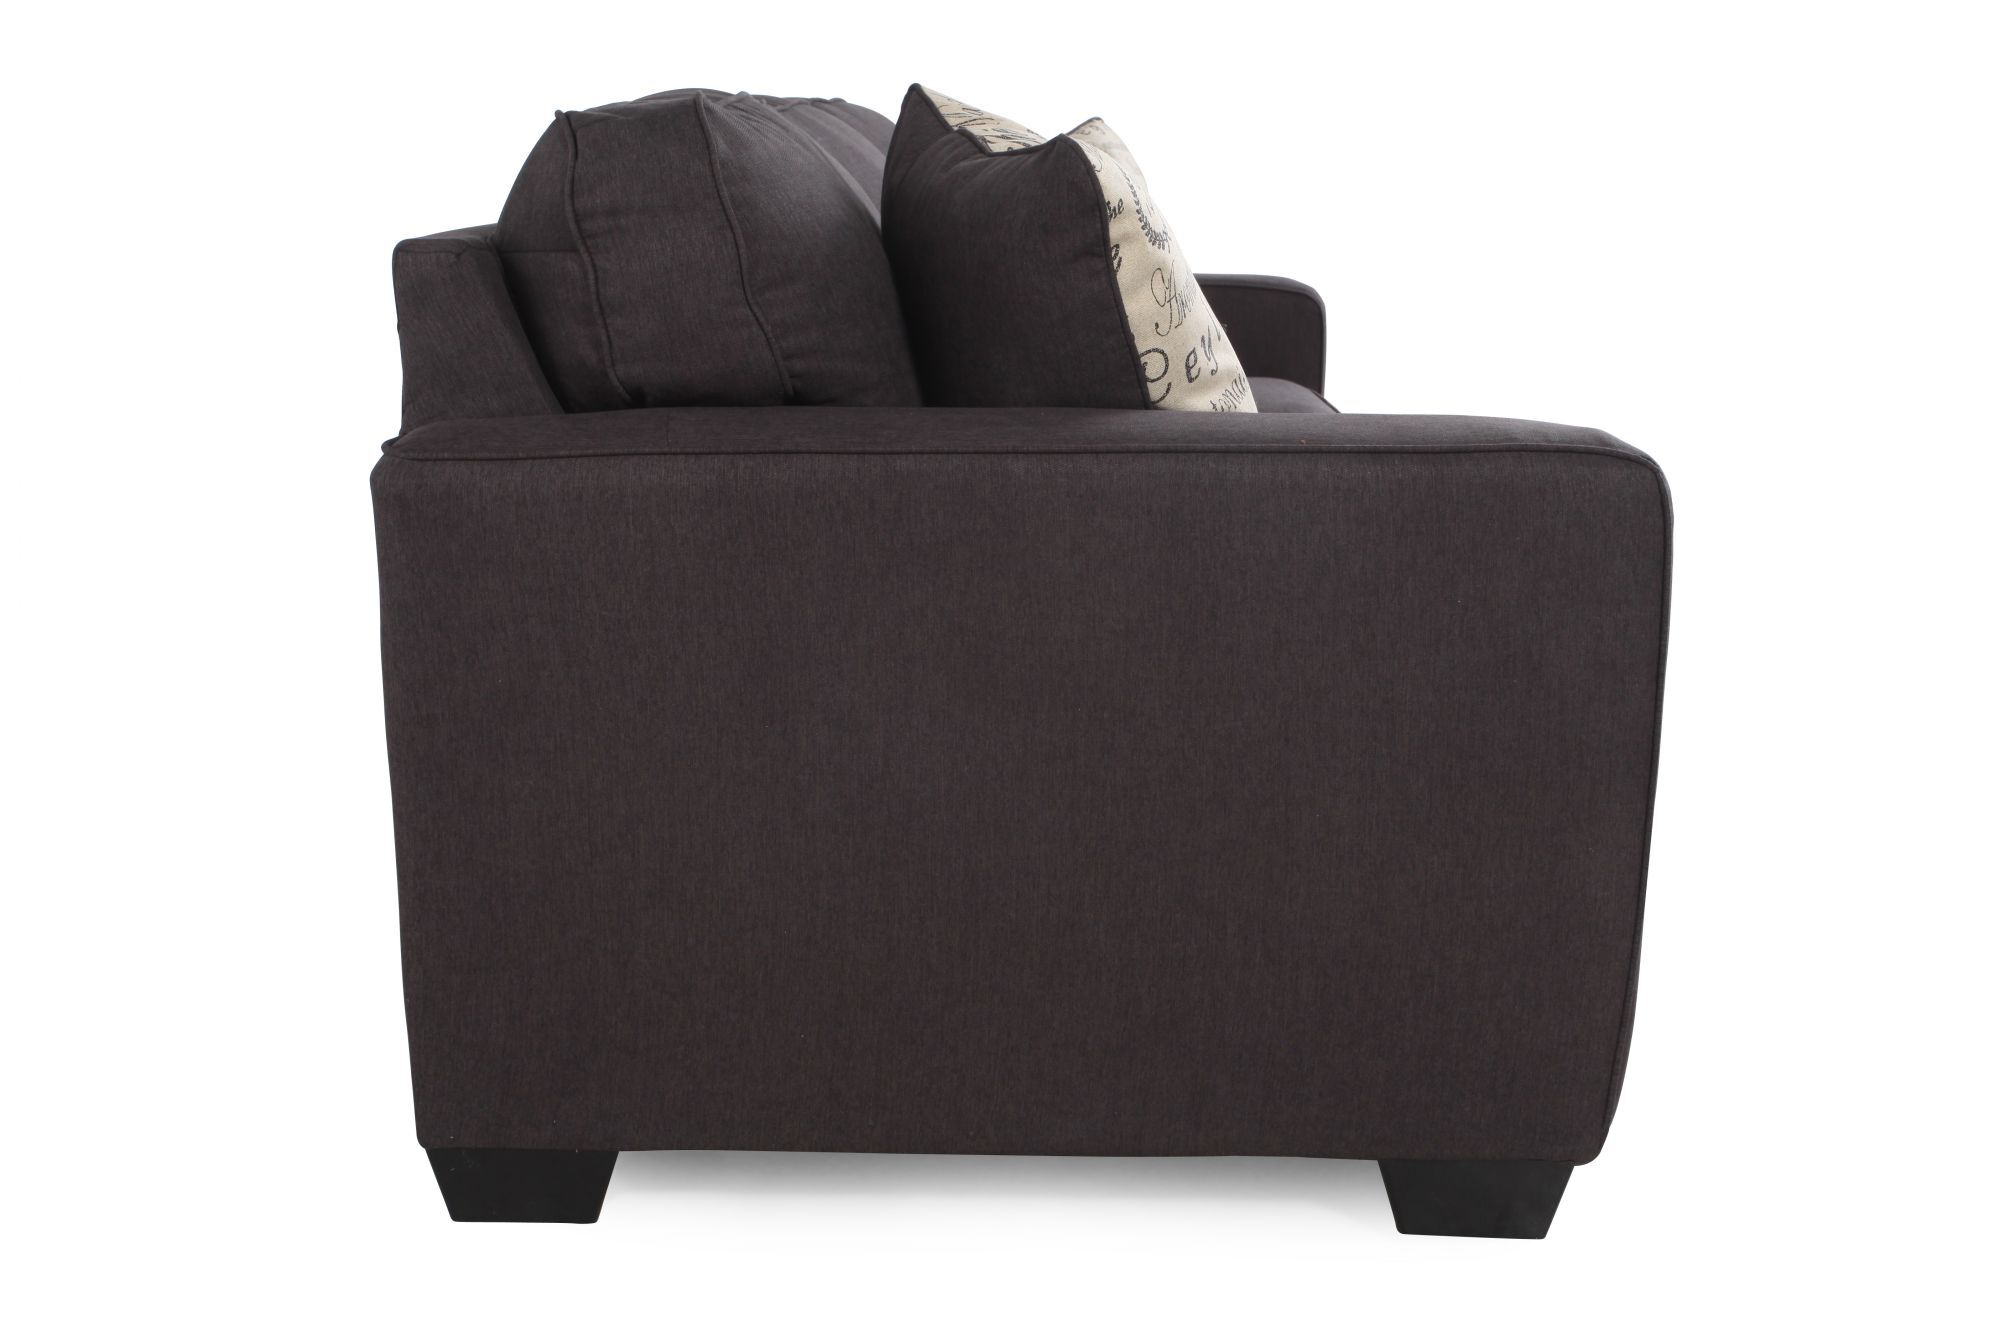 Low Profile Casual 84 Sofa In Charcoal Mathis Brothers Furniture